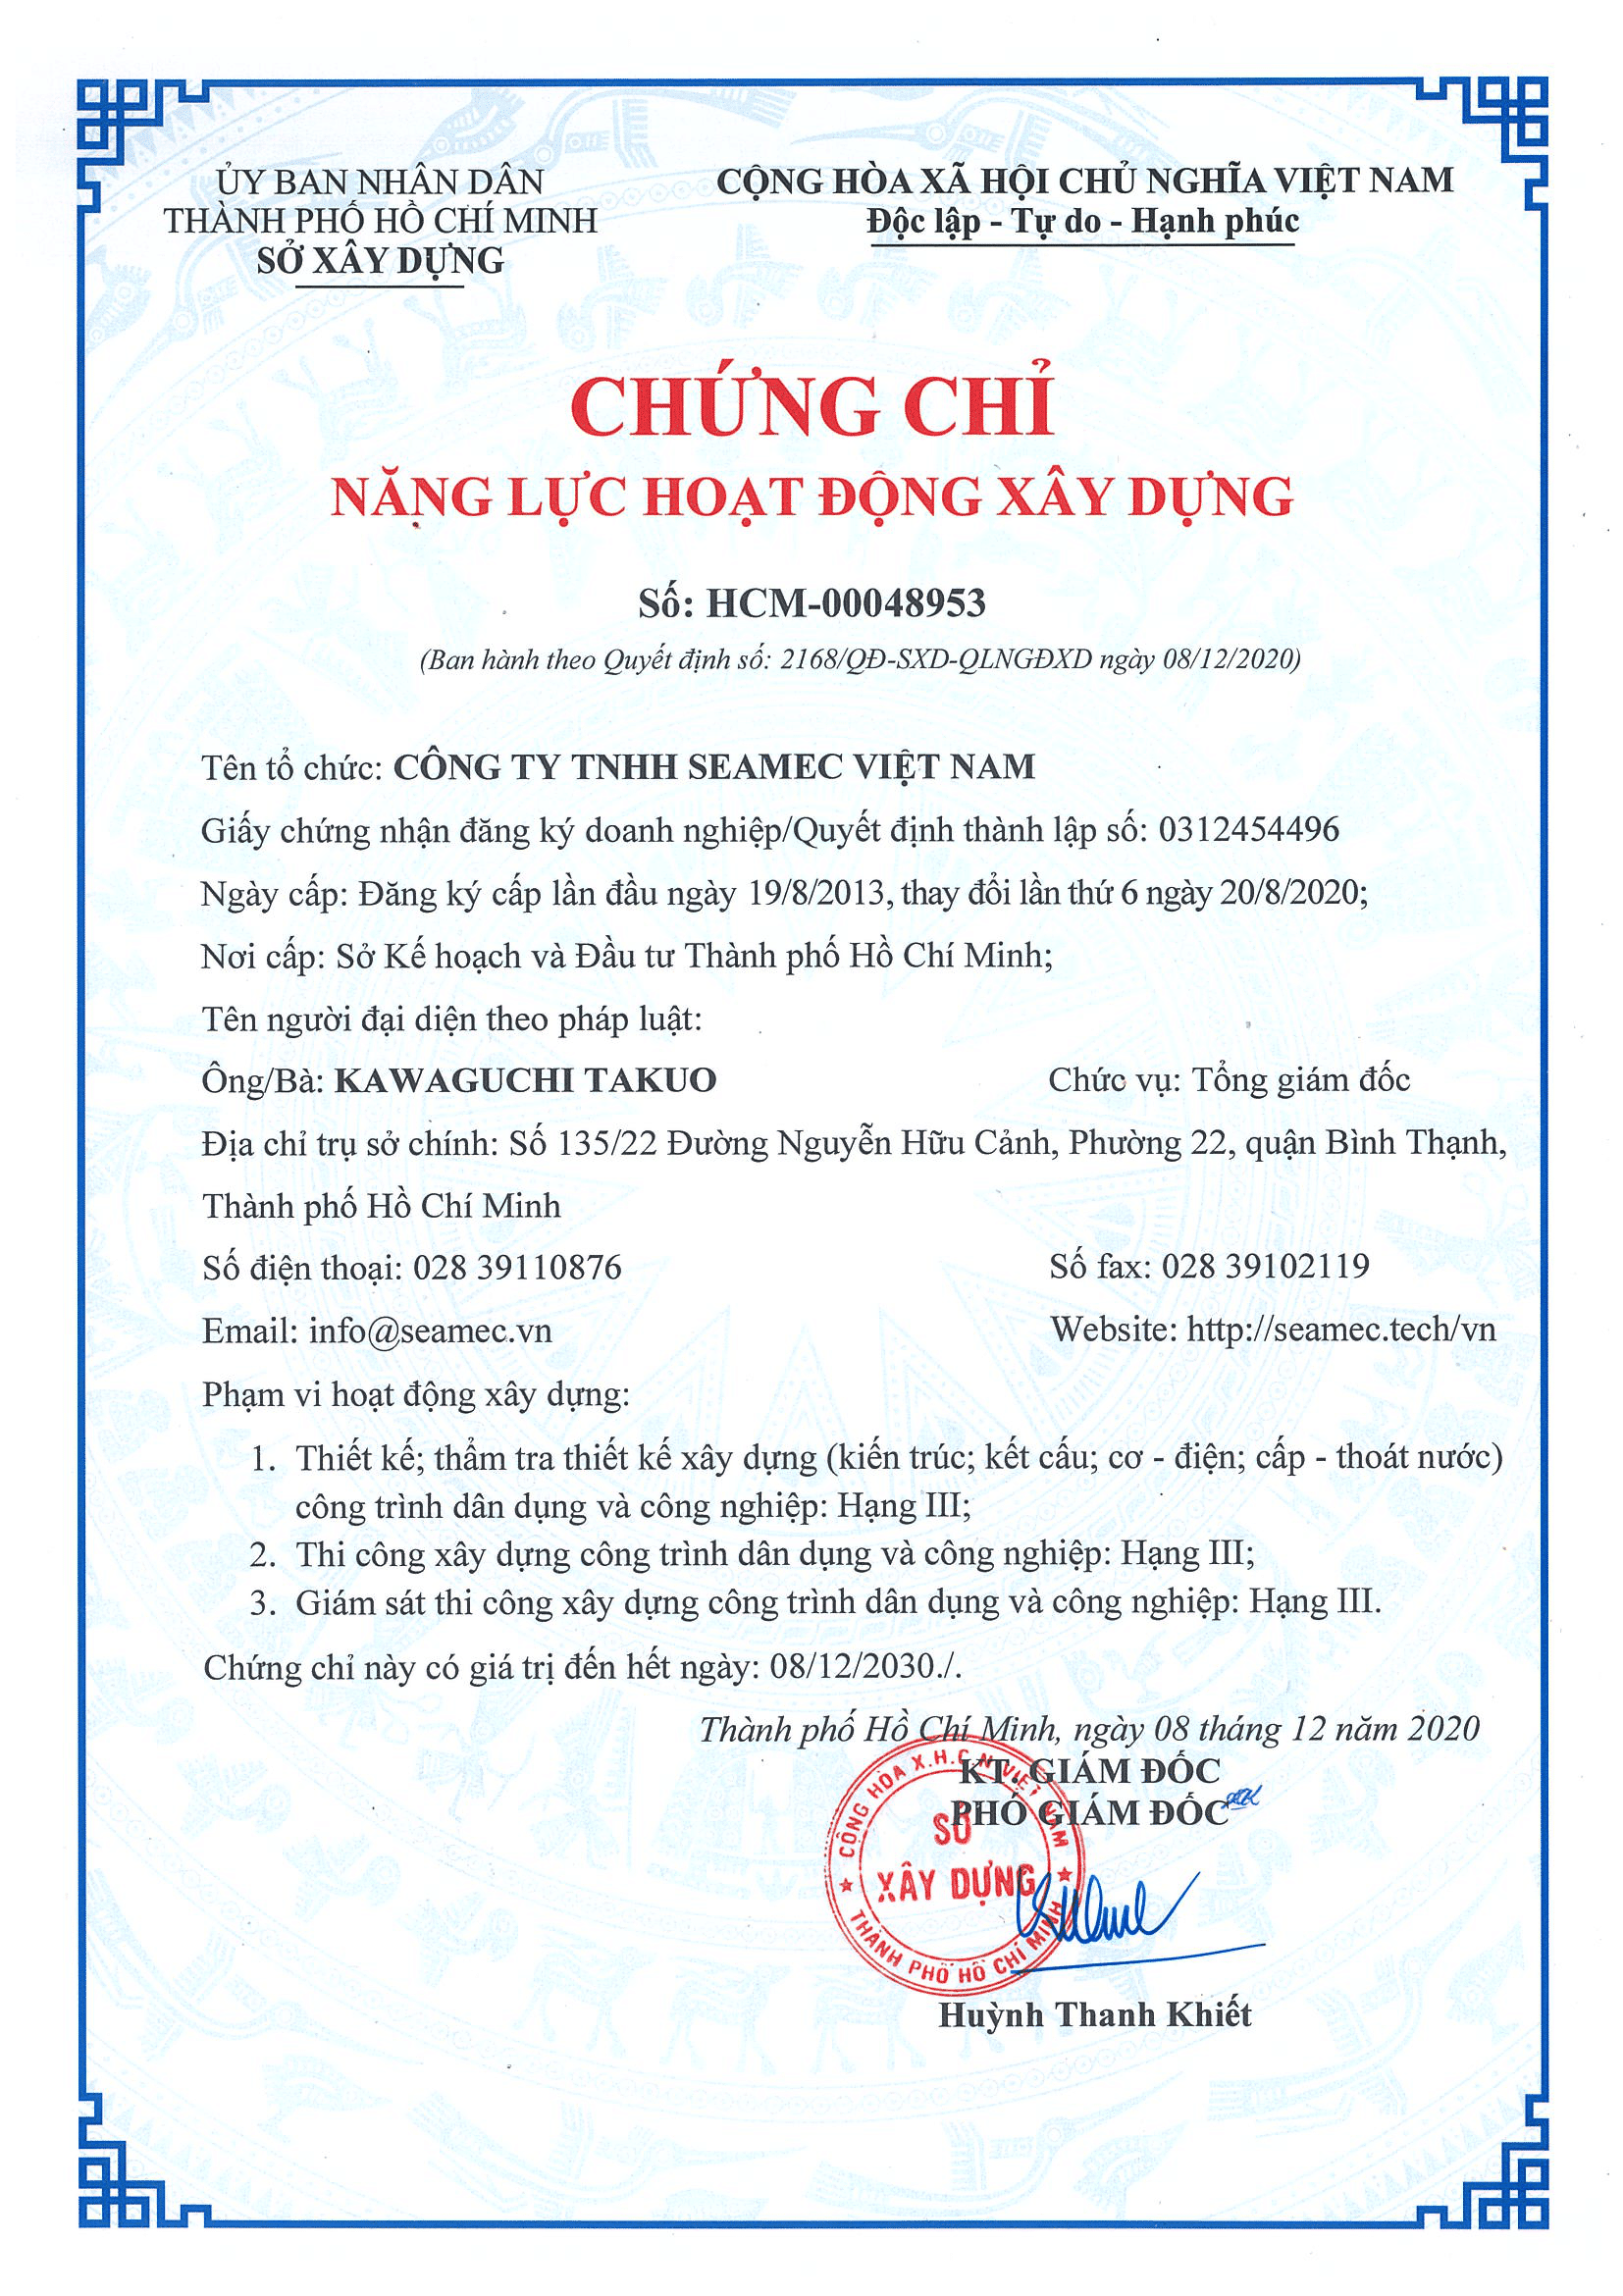 Certificate of competence in construction activities (level III)